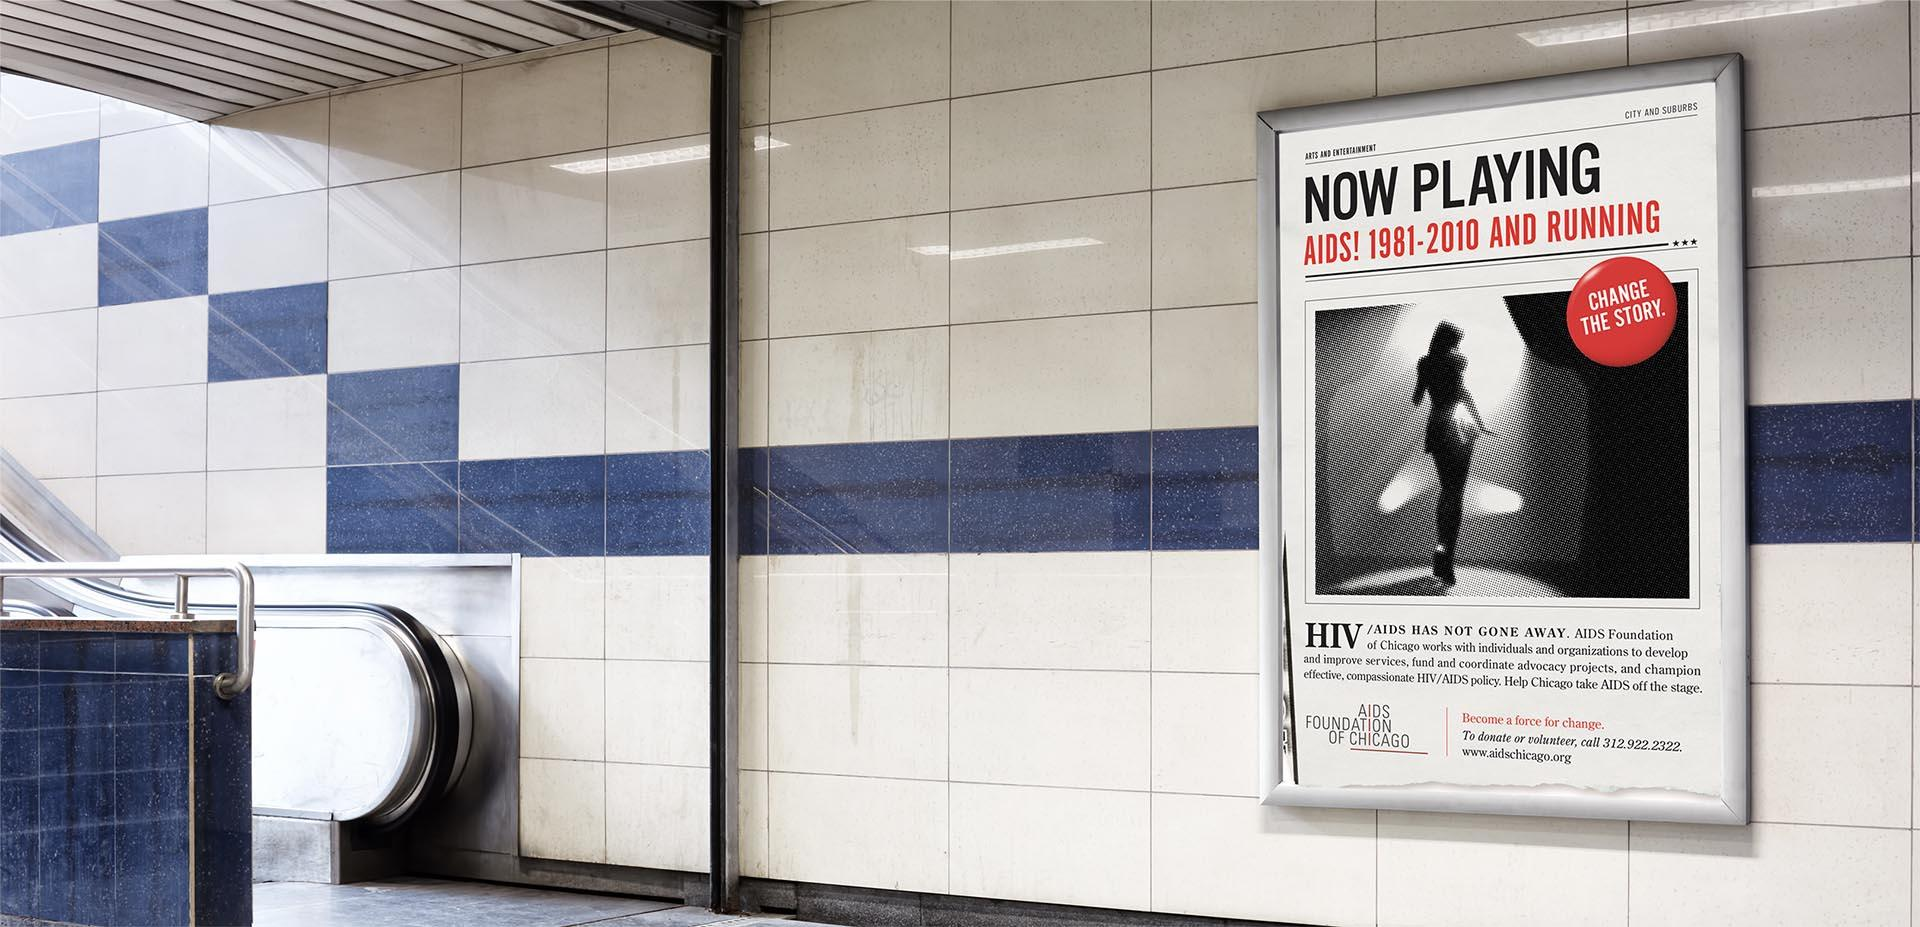 Changing the story about HIV / AIDS subway stairs ad